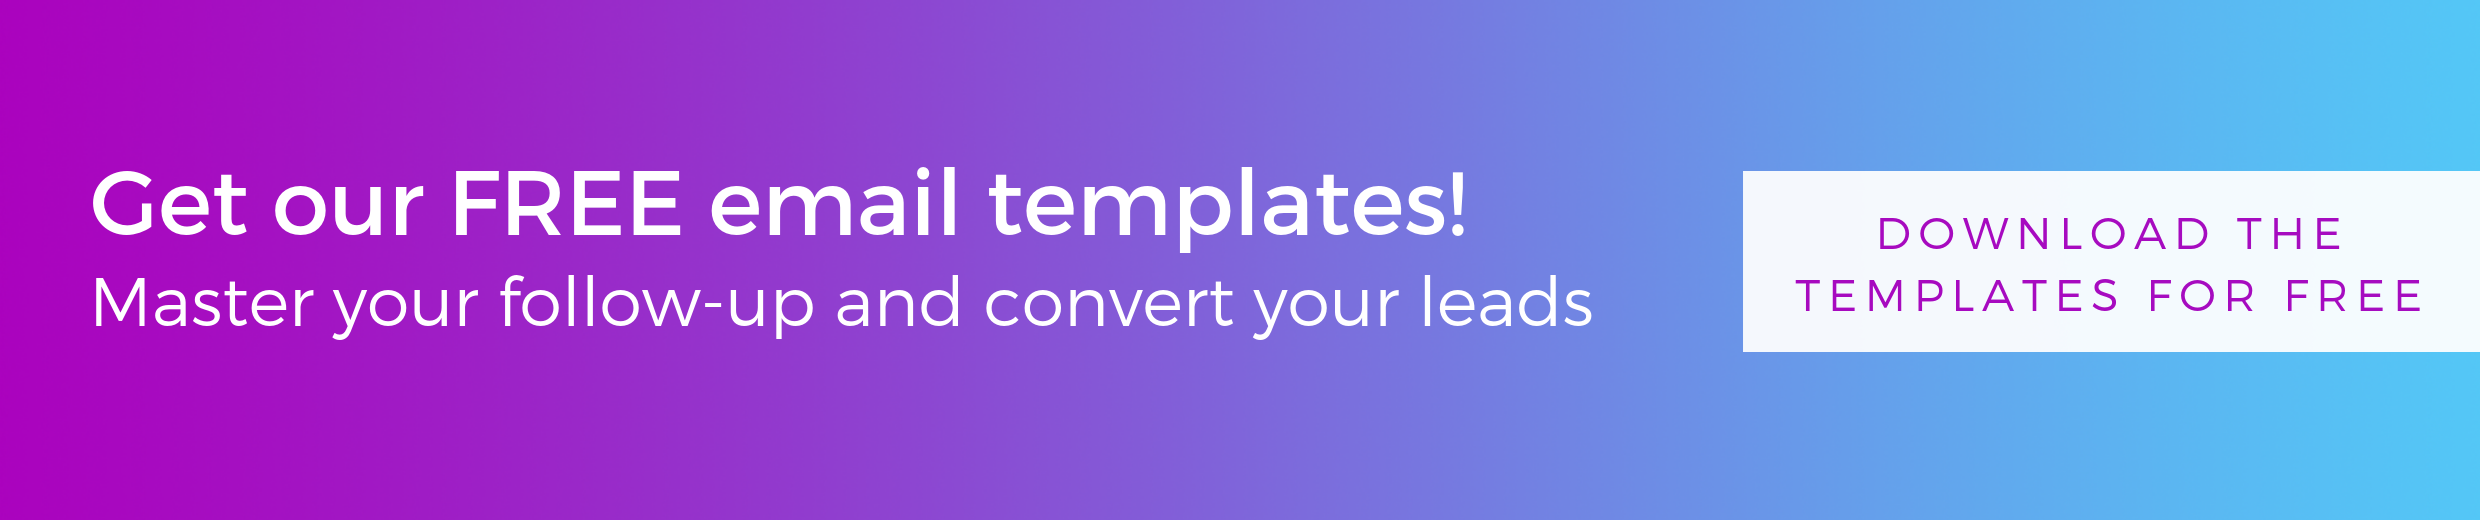 Get free email templates for successfull lead follow-up